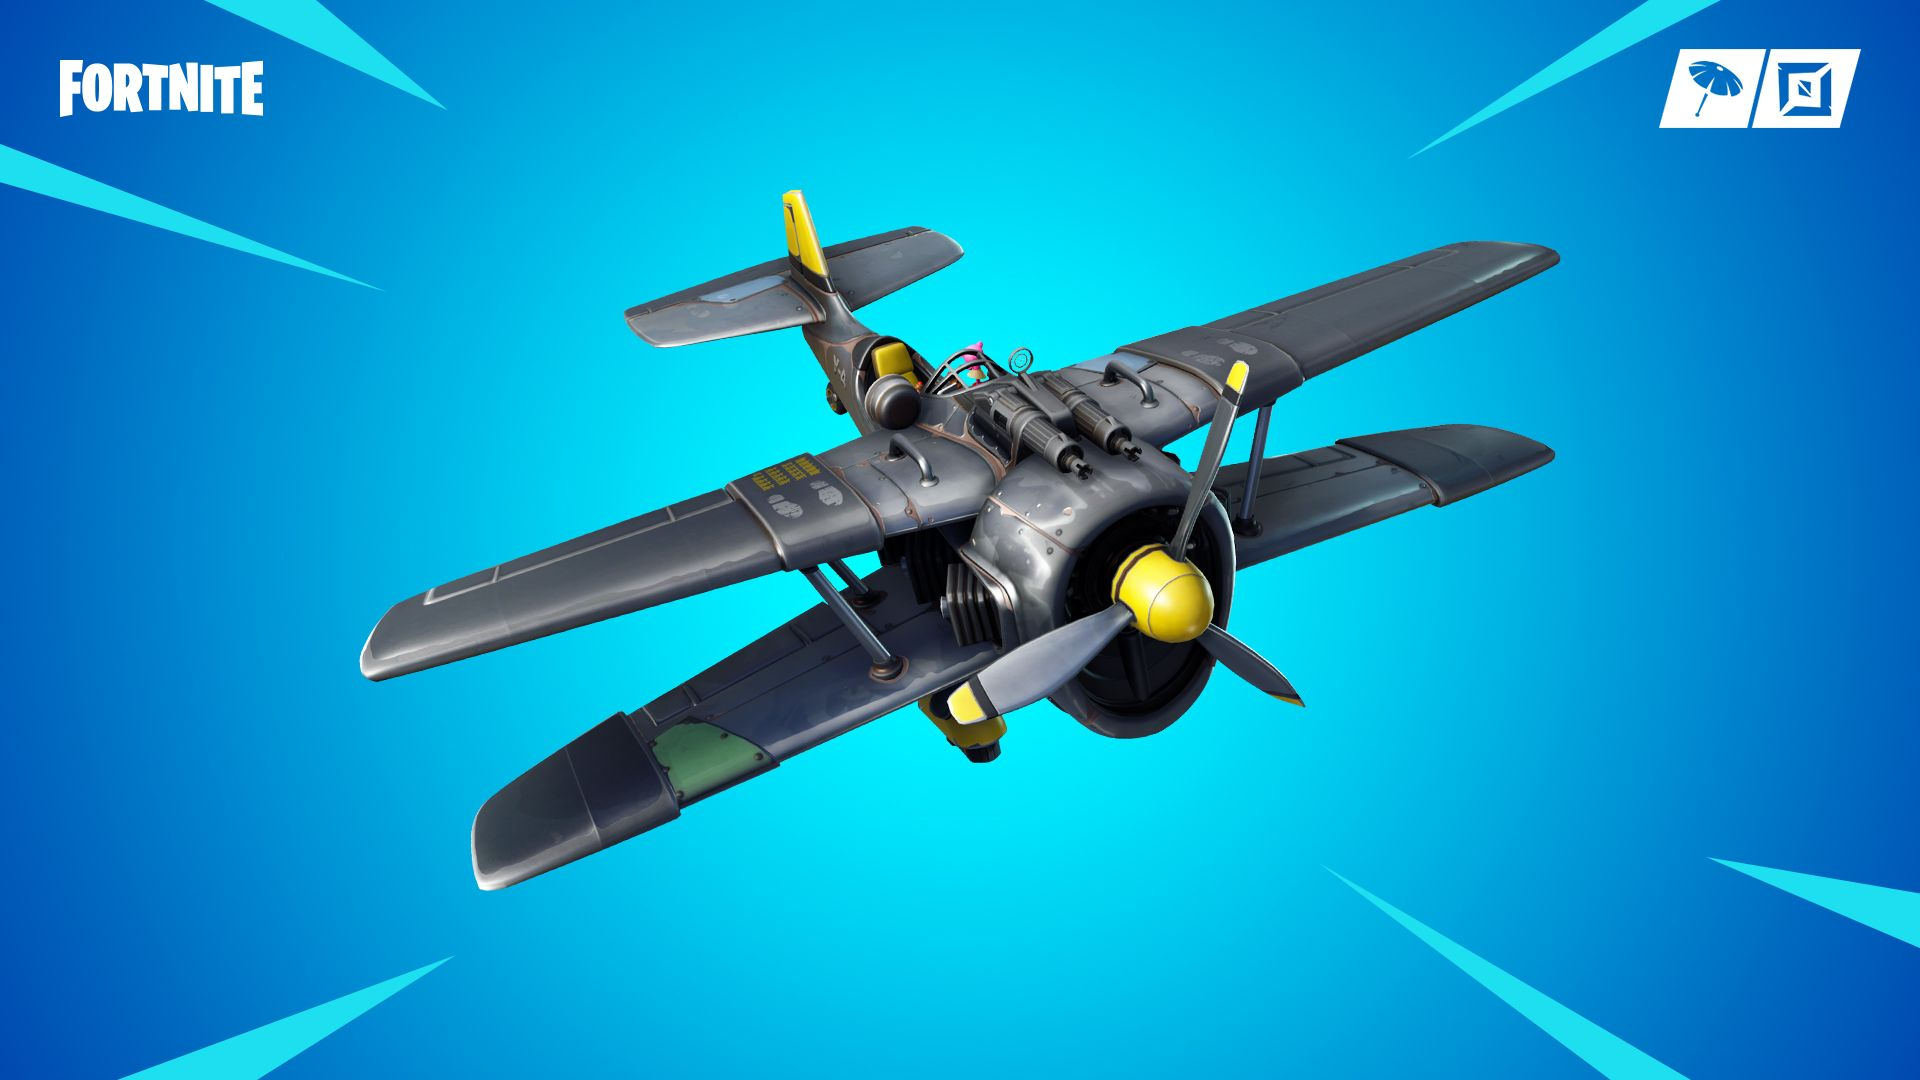 Fortnite Season 7 V7 00 Patch Notes Planes New Locations Weapon